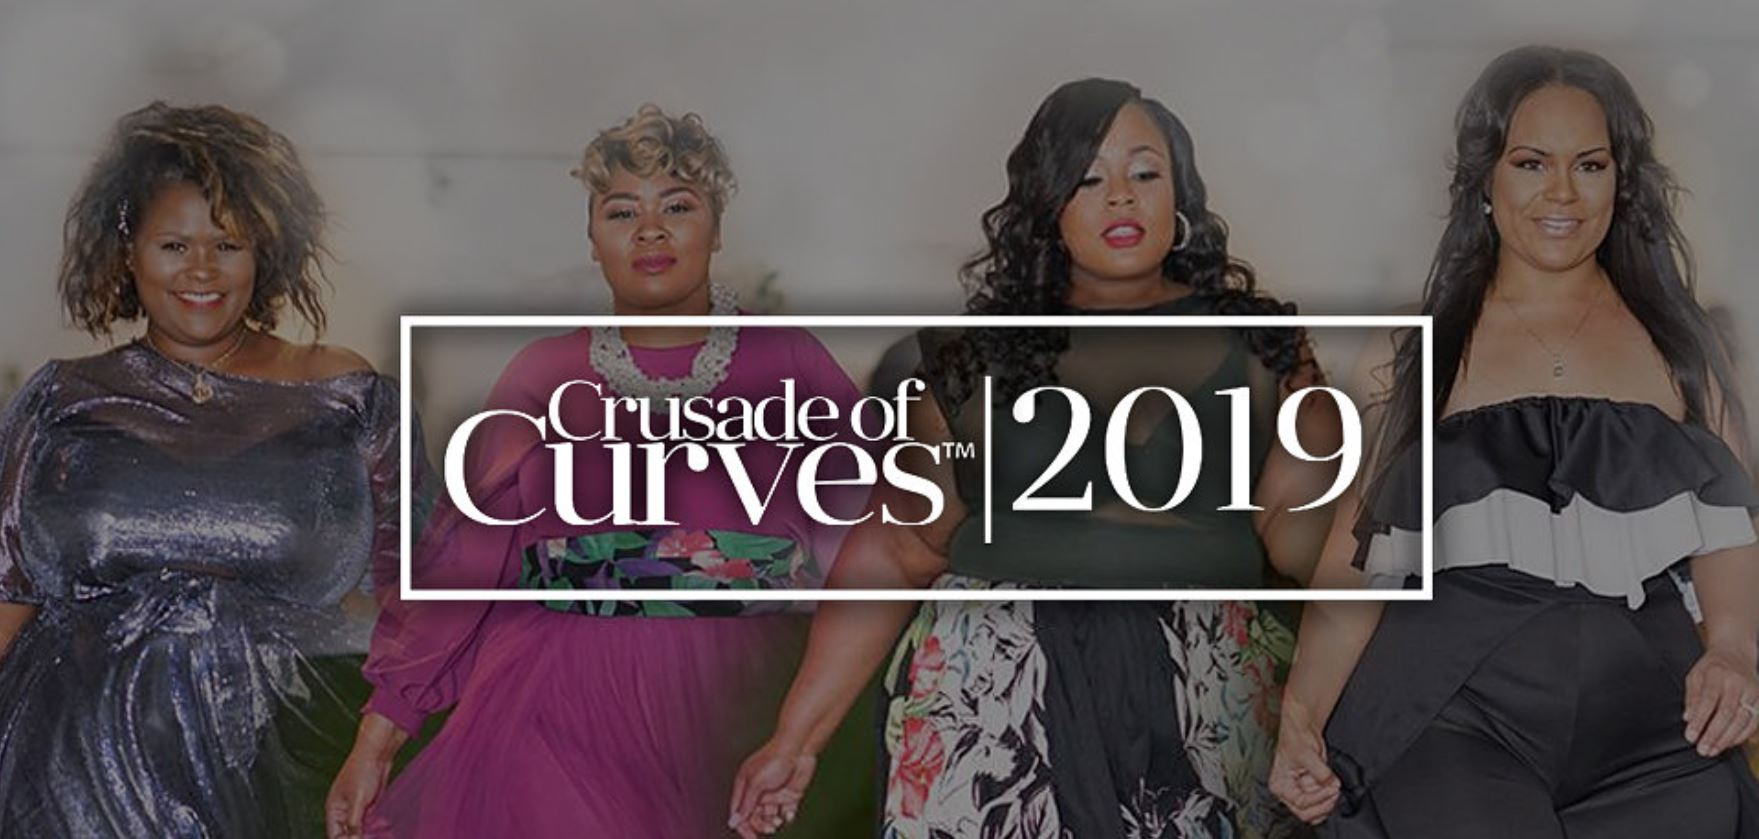 crusadeofcurves.6april2019.homepagephoto.jpg